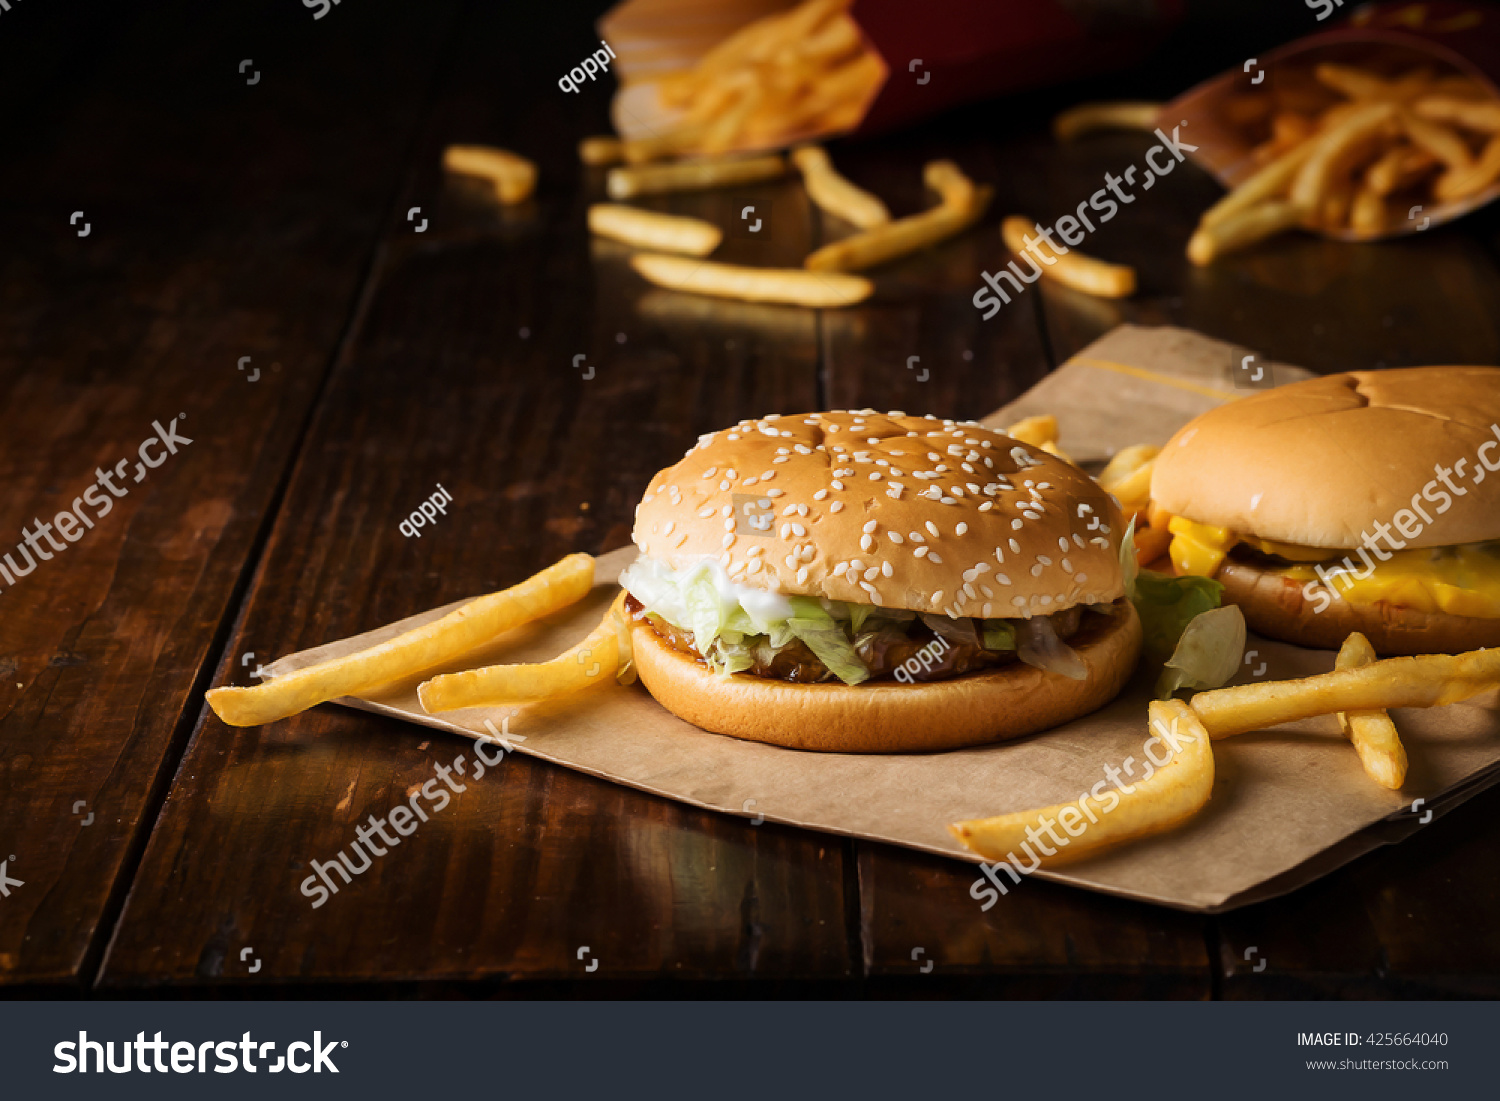 Close burger fast food hamburger menu stock photo for Table burger